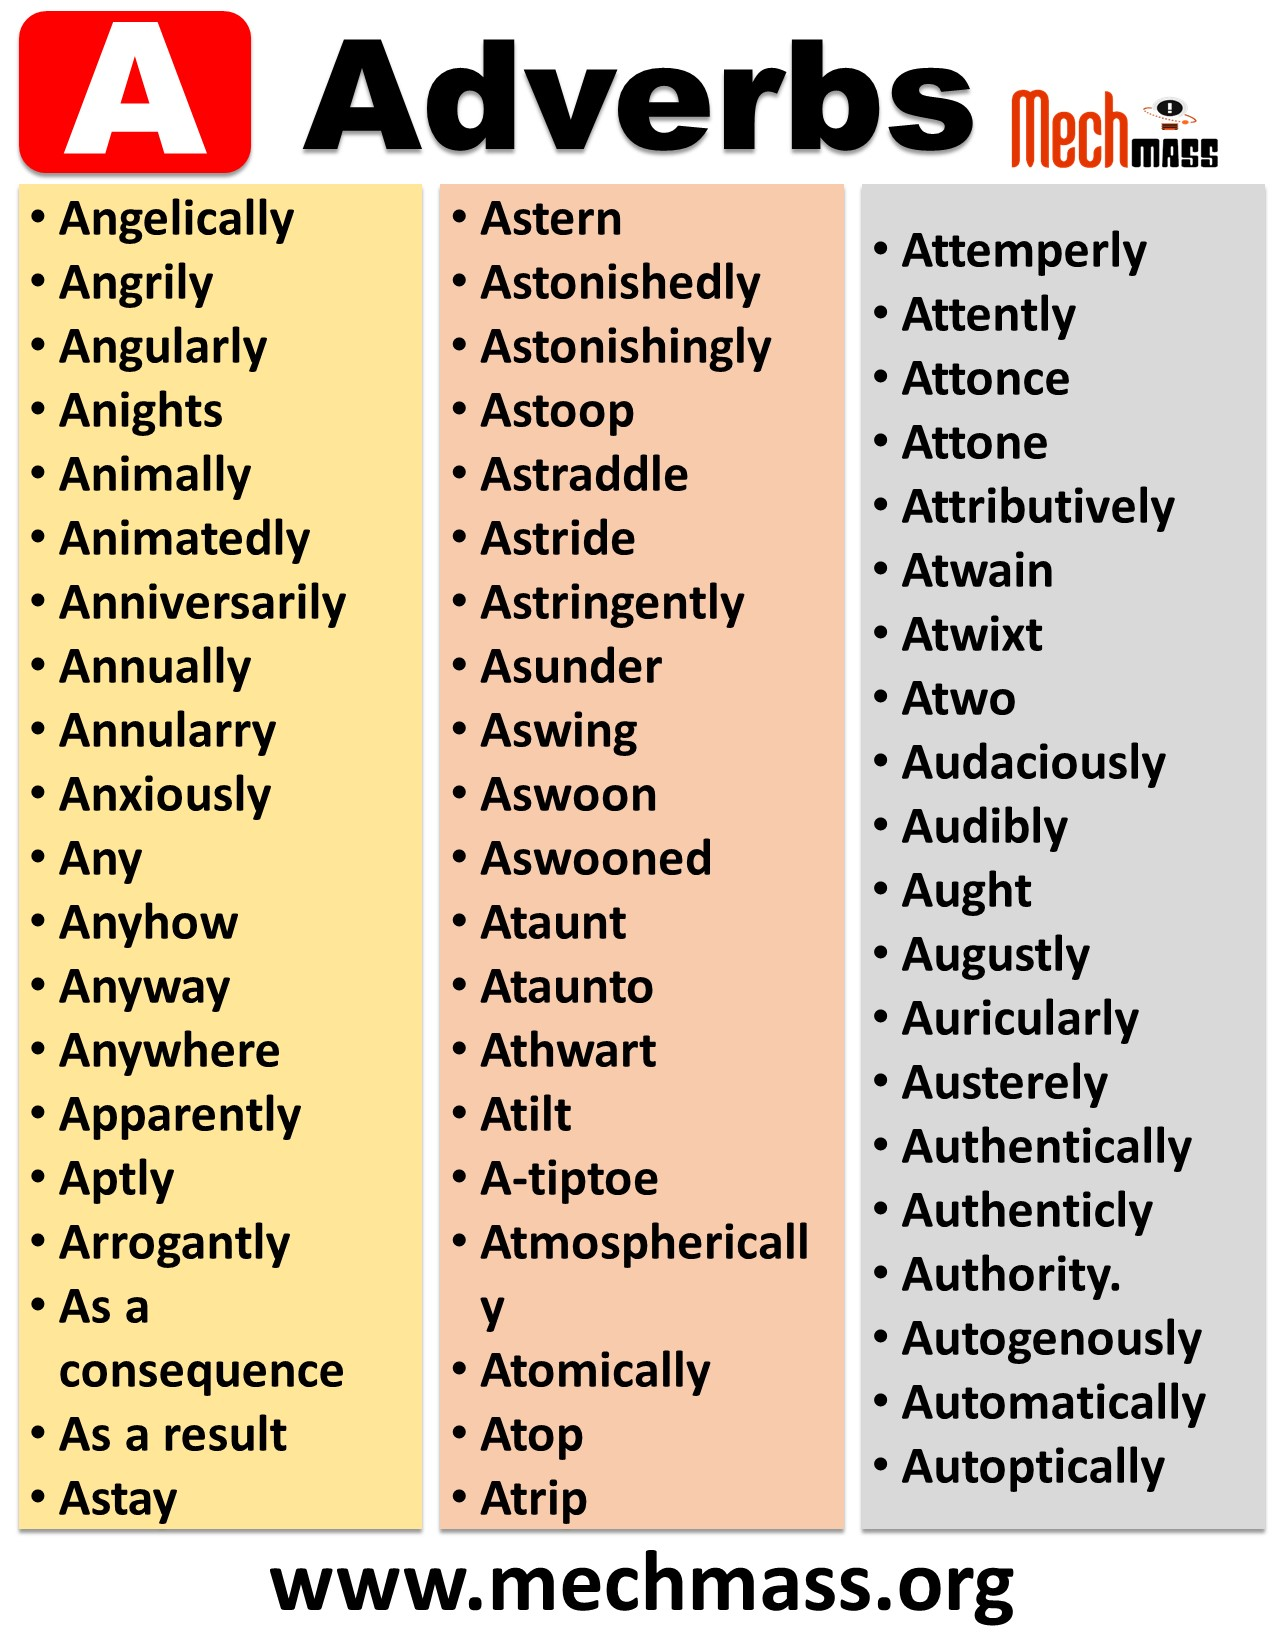 list of adverbs starting with a